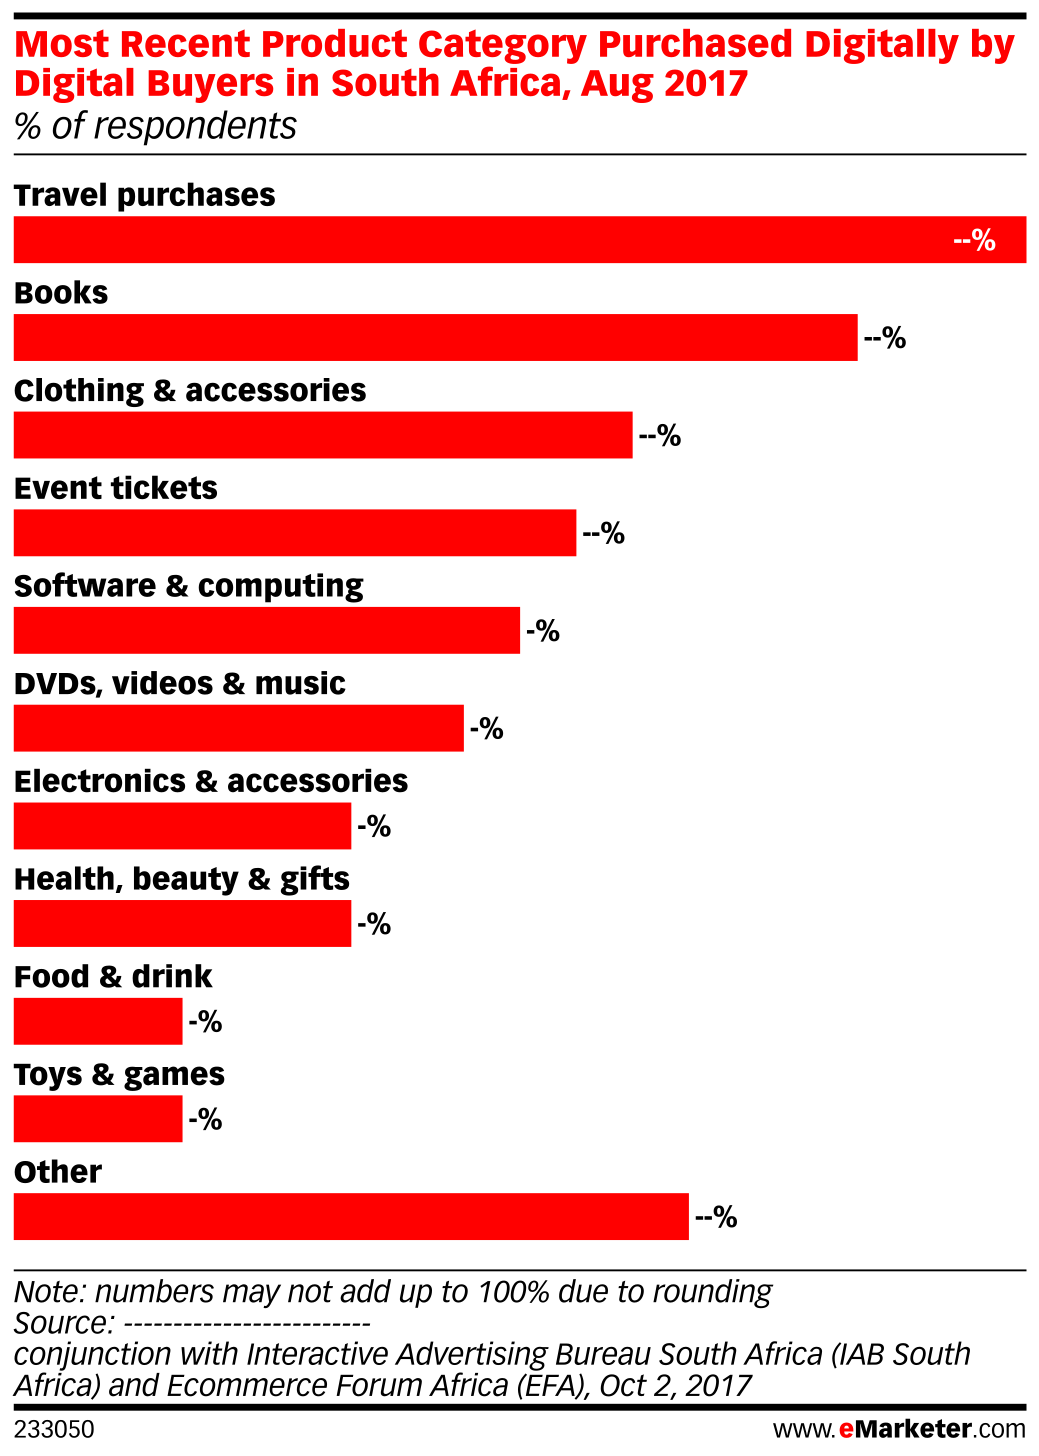 Most Recent Product Category Purchased Digitally by Digital Buyers in South Africa, Aug 2017 (% of respondents)